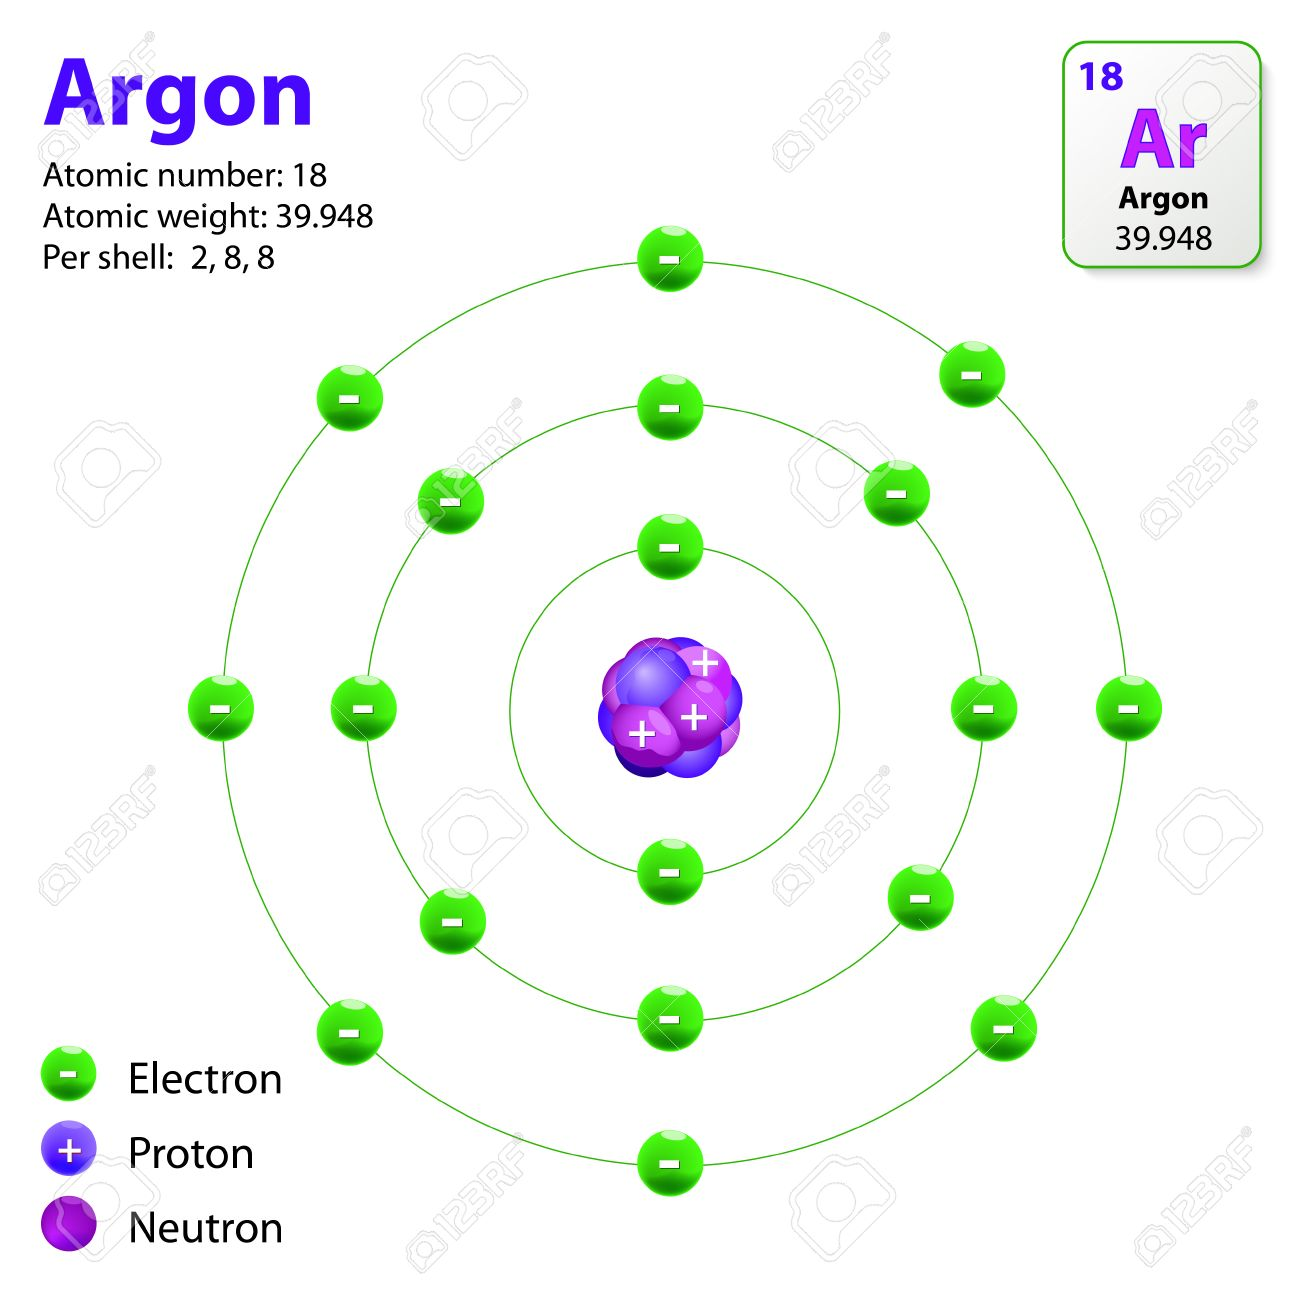 Atom argon this diagram shows the electron shell configuration atom argon this diagram shows the electron shell configuration for the argon atom stock vector ccuart Image collections